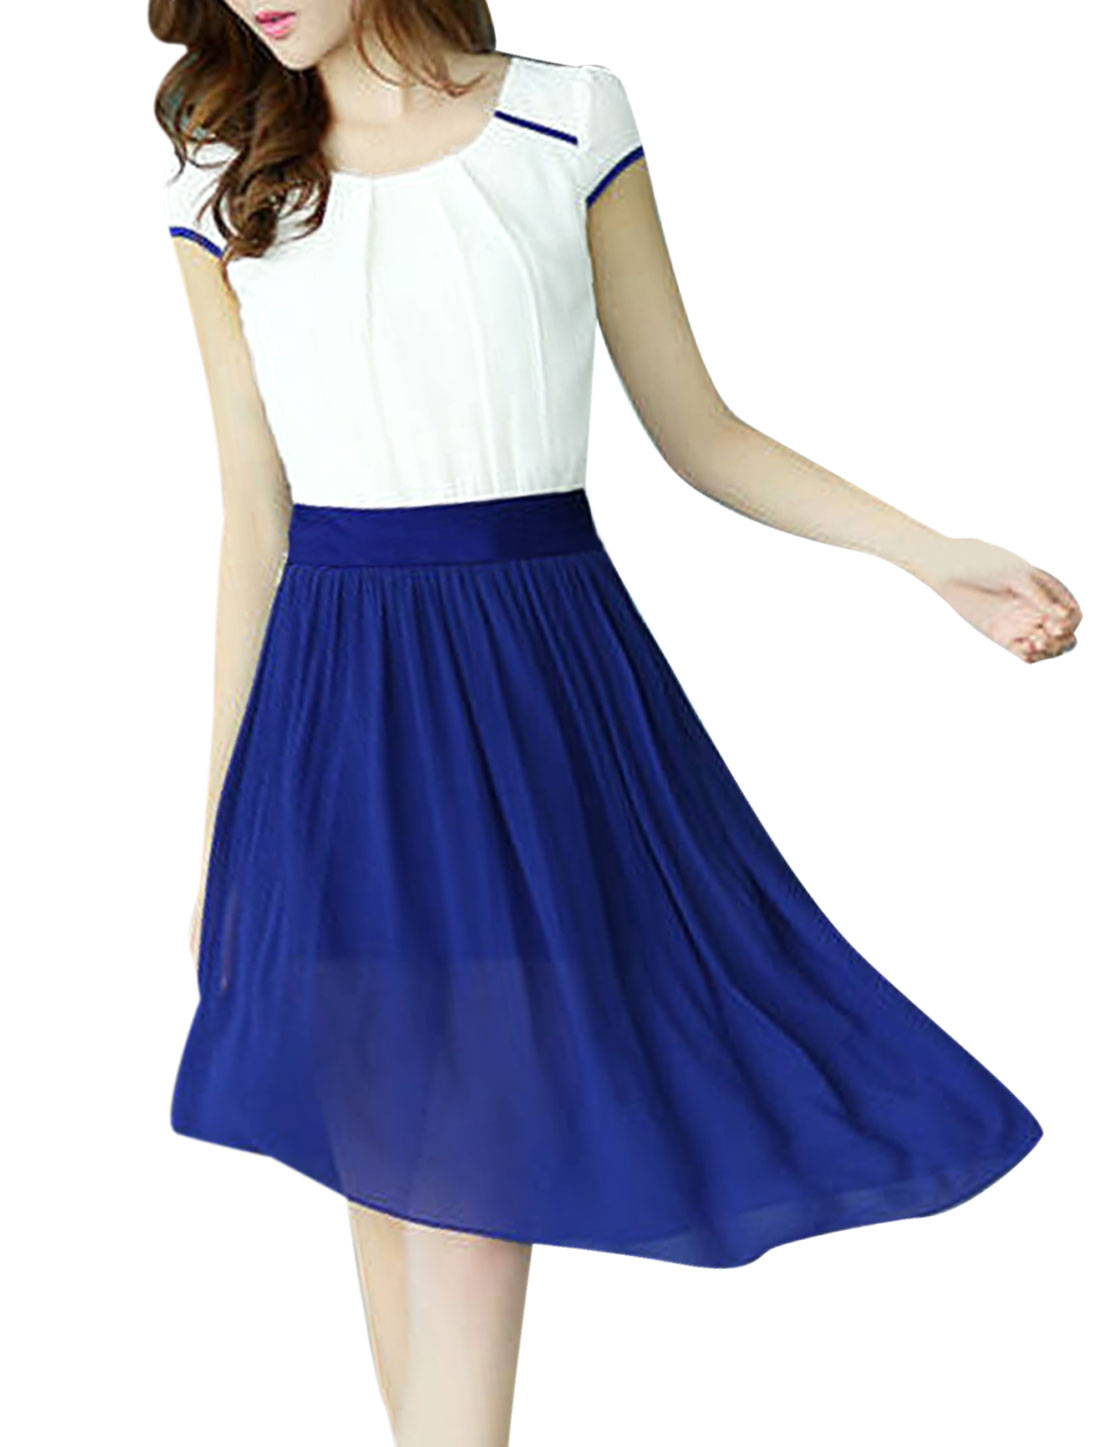 Pullover Contrast Color Royalblue White Convertible Dress for Lady S